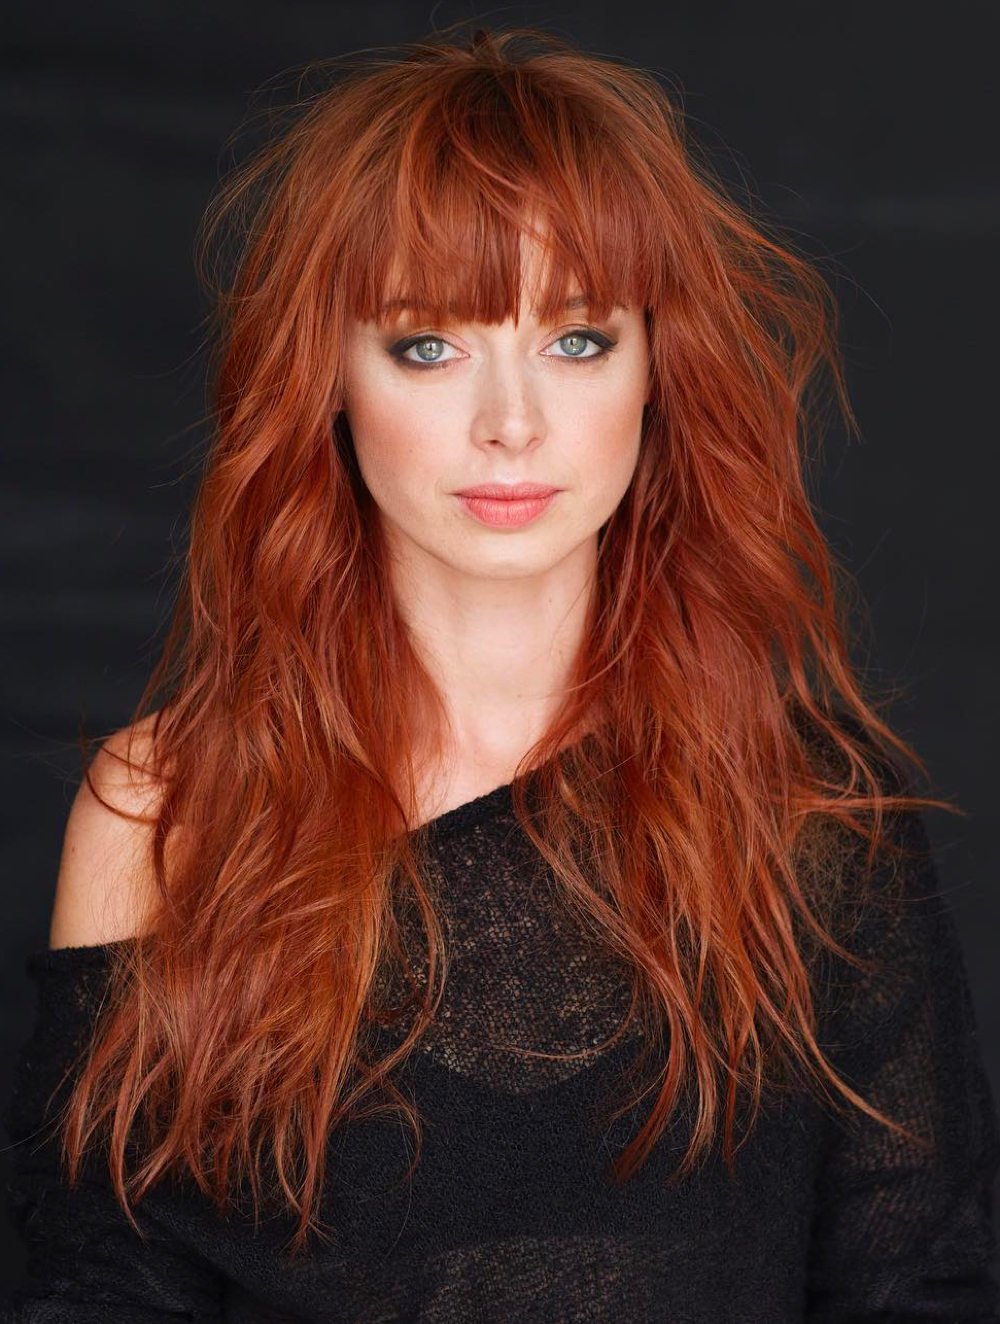 Long Shag Haircuts: 36 Examples For 2019 Within Favorite Long Curly Shag Hairstyles With Bangs (View 18 of 20)